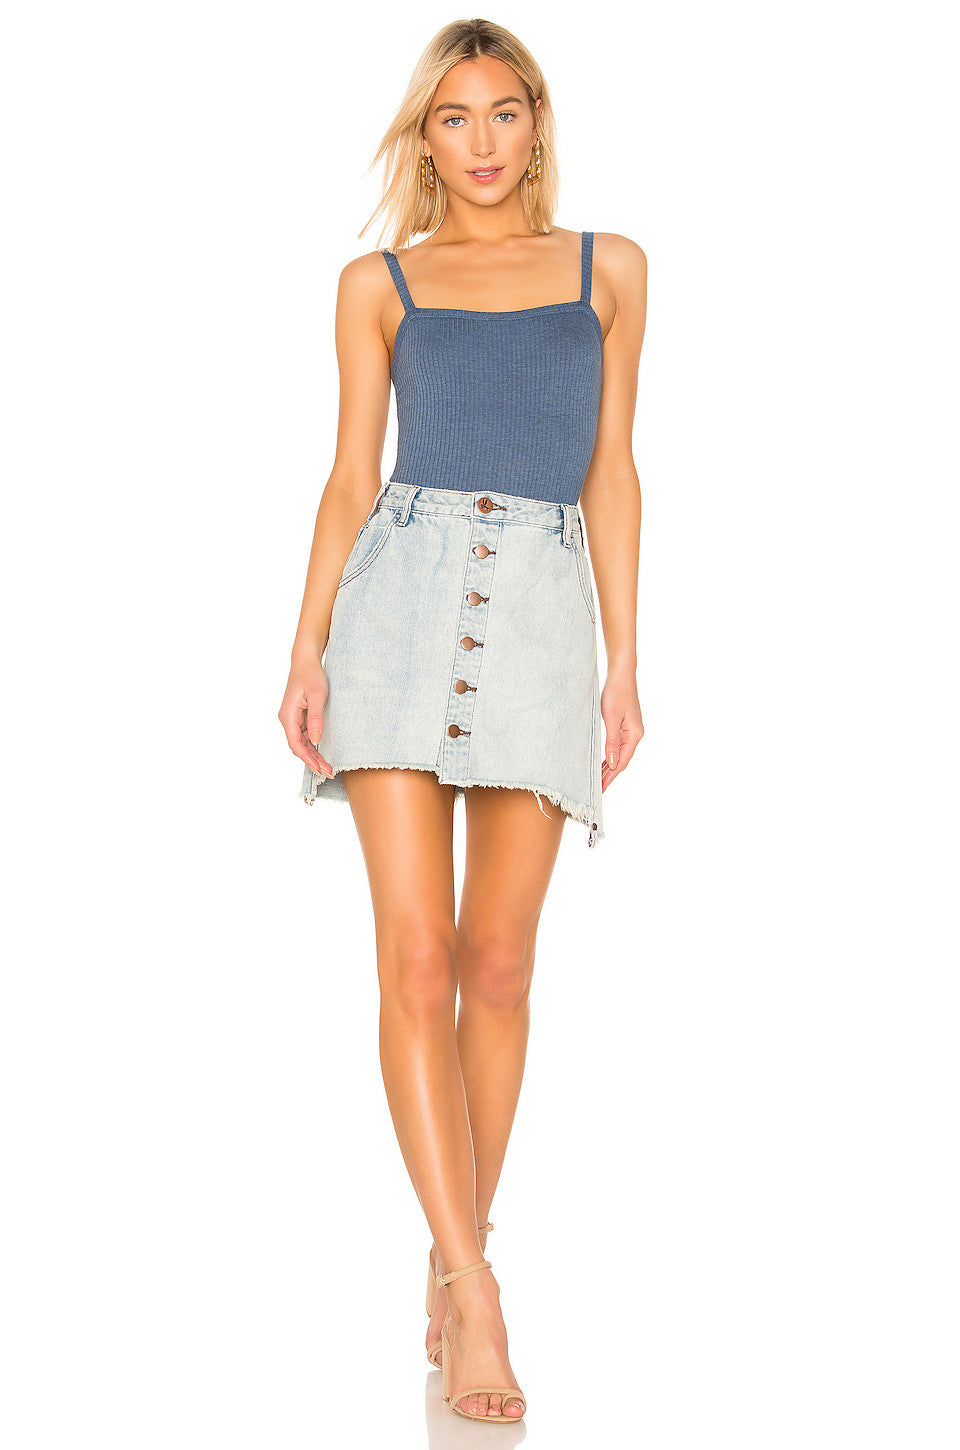 Viper High Waist Button Through Mini Skirt